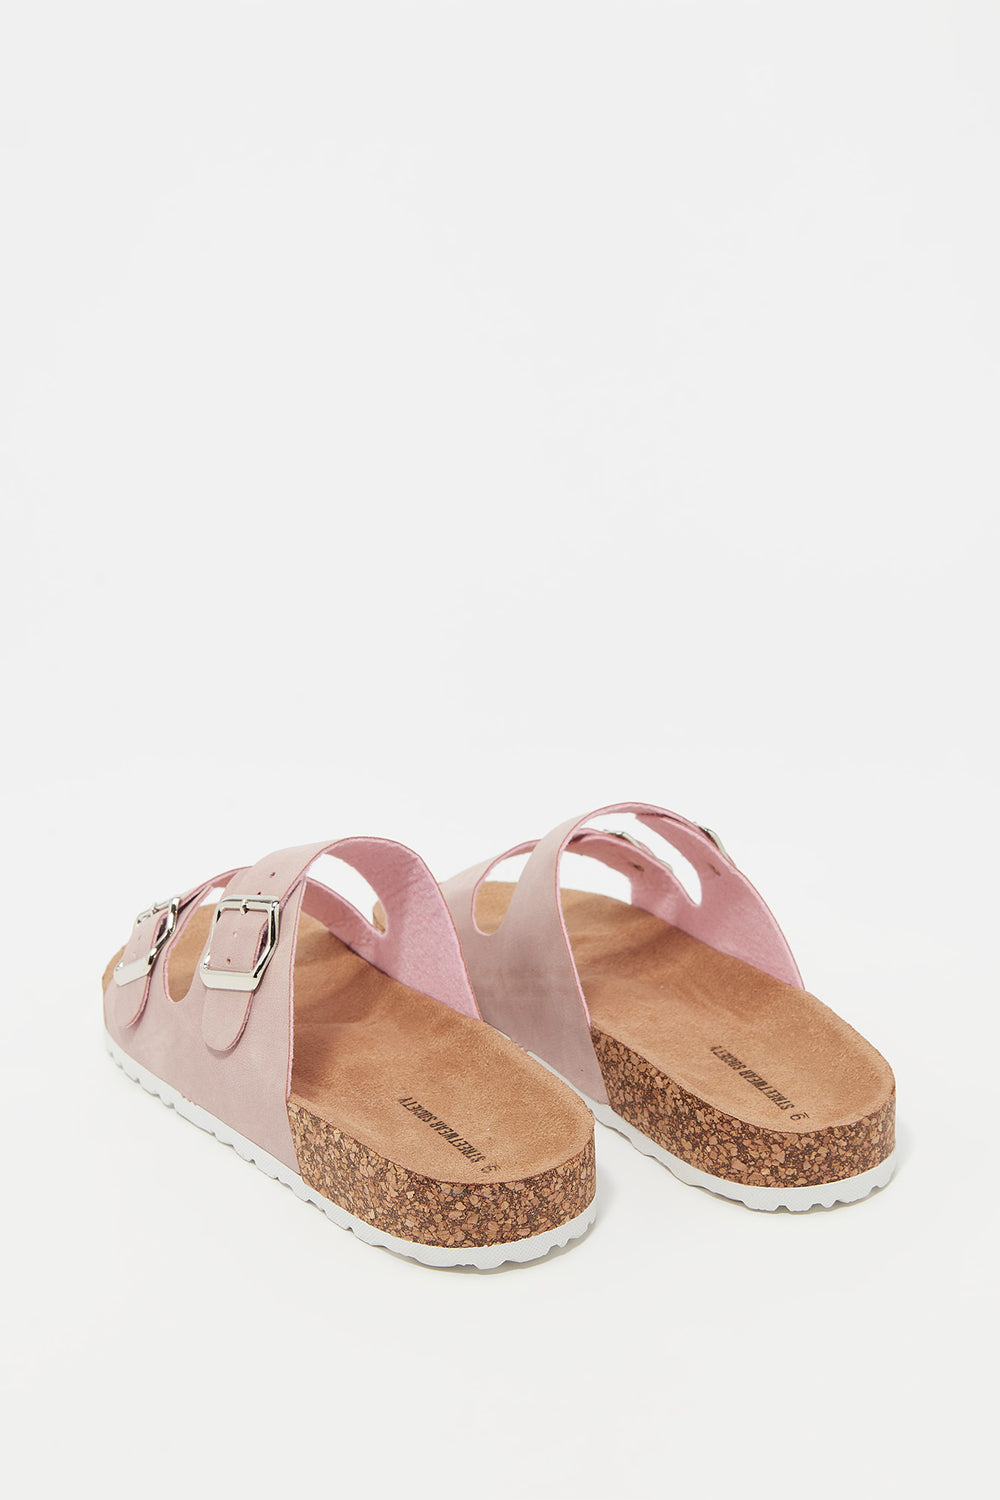 Faux-Suede Double Strap Cork Slip-On Sandal Pink